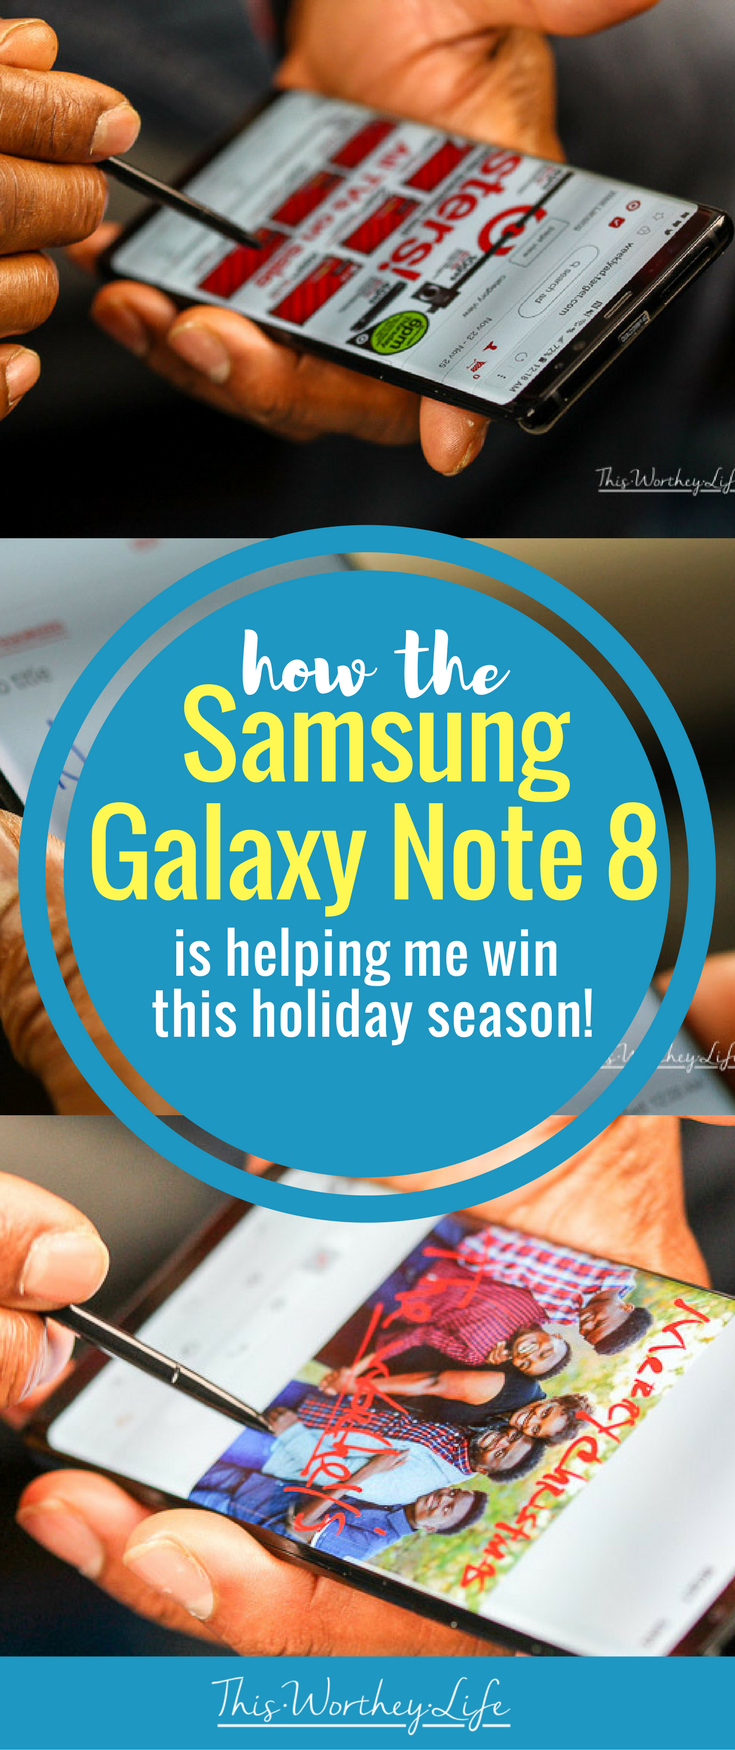 With the hustle and bustle of the holidays, I'm sharing how the Samsung Galaxy Note 8 is helping me win this holiday season with my favorite apps, Black Friday shopping tips, and how I am sending out a personalized holiday card from my smartphone.